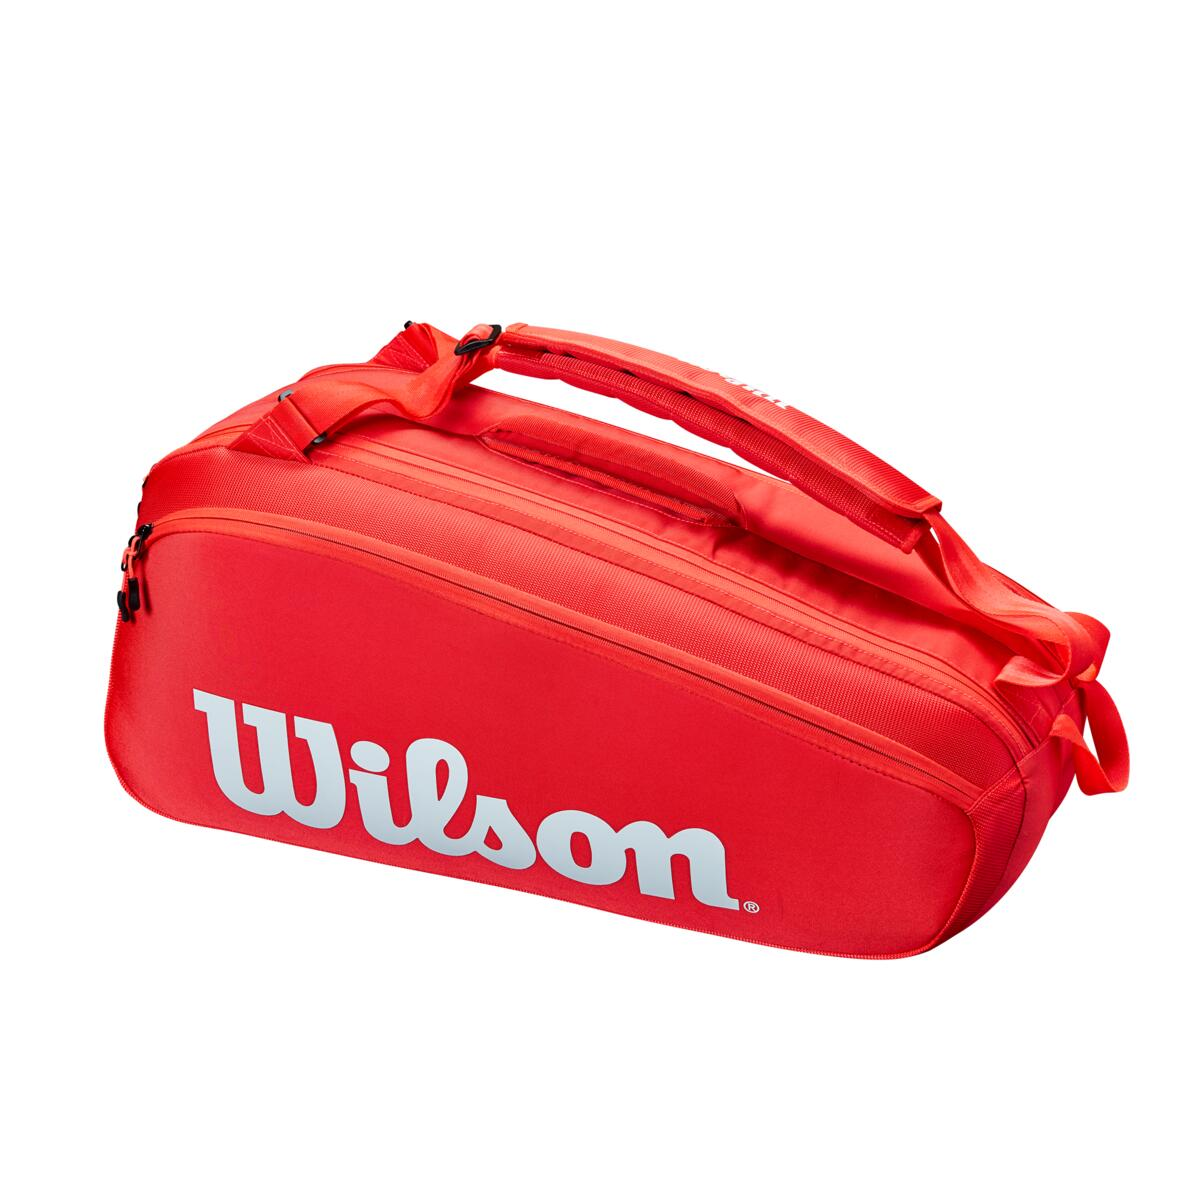 Wilson Super Tour 6 Pack Tennis Bag Red/White 2021